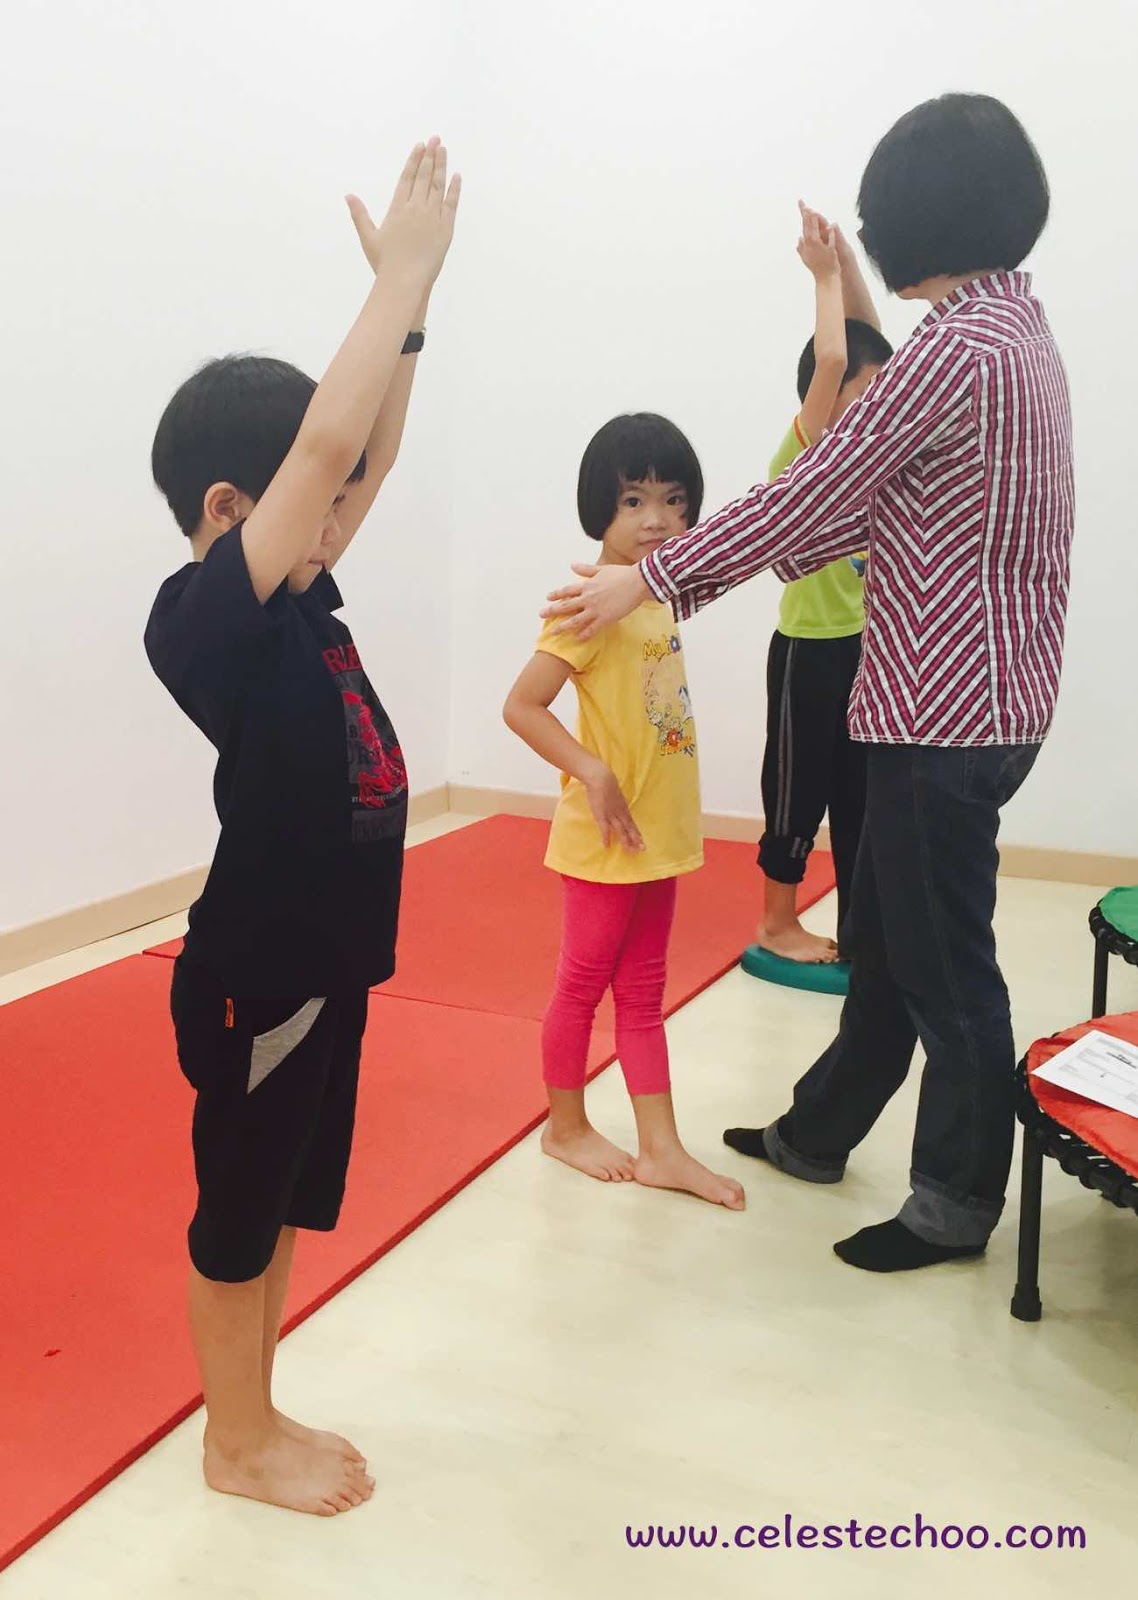 Celestechoo Smart Moves And Exercises At Brainfit Studio